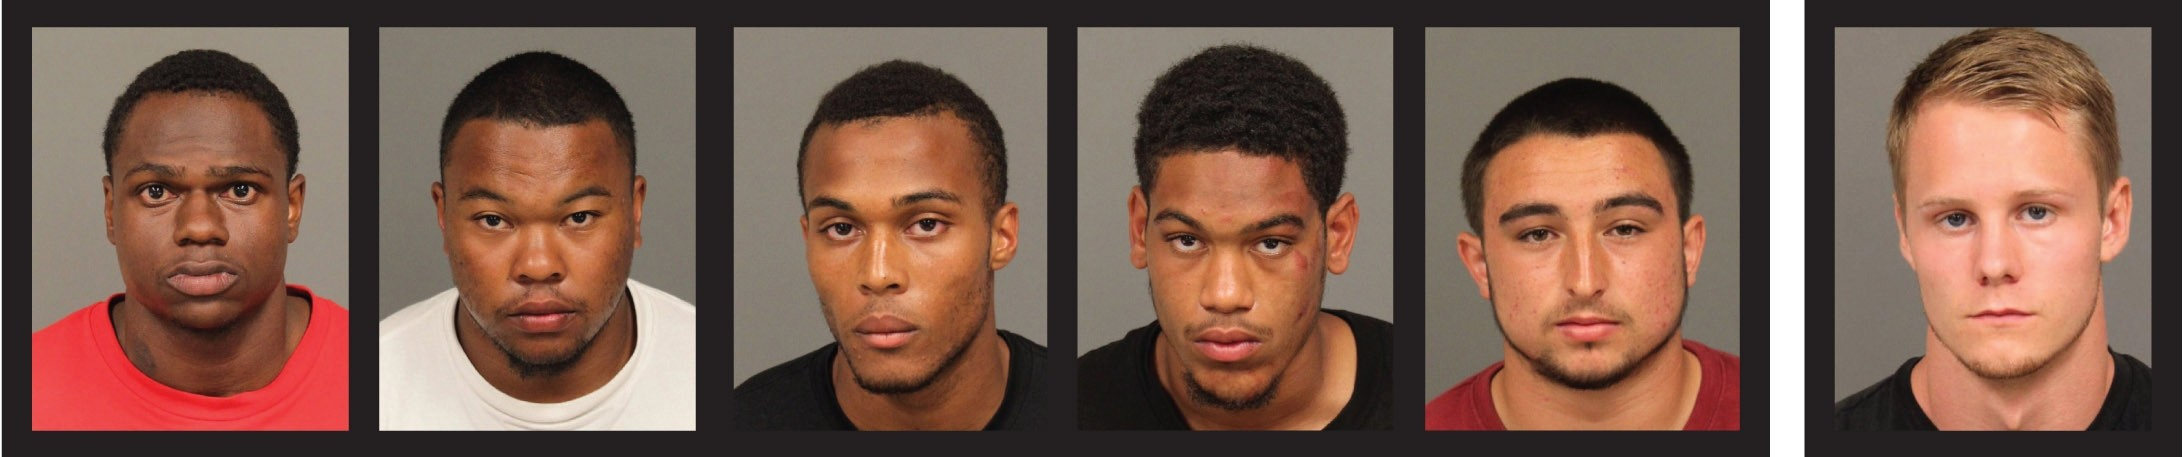 THE SUSPECTS:  San Luis Obispo police arrested Cal Poly students (from left) Cortland Fort, Kristaan Ivory, Dominique Love, Cameron - Akins, Jake Brito, and Gear McMillan between Aug. 10 and Sept. 4. McMillan was arrested on suspicion of drug-related offenses, and the other five (all football players) were arrested on suspicion of planning or carrying out an armed robbery. - PHOTOS COURTESY OF SLOPD